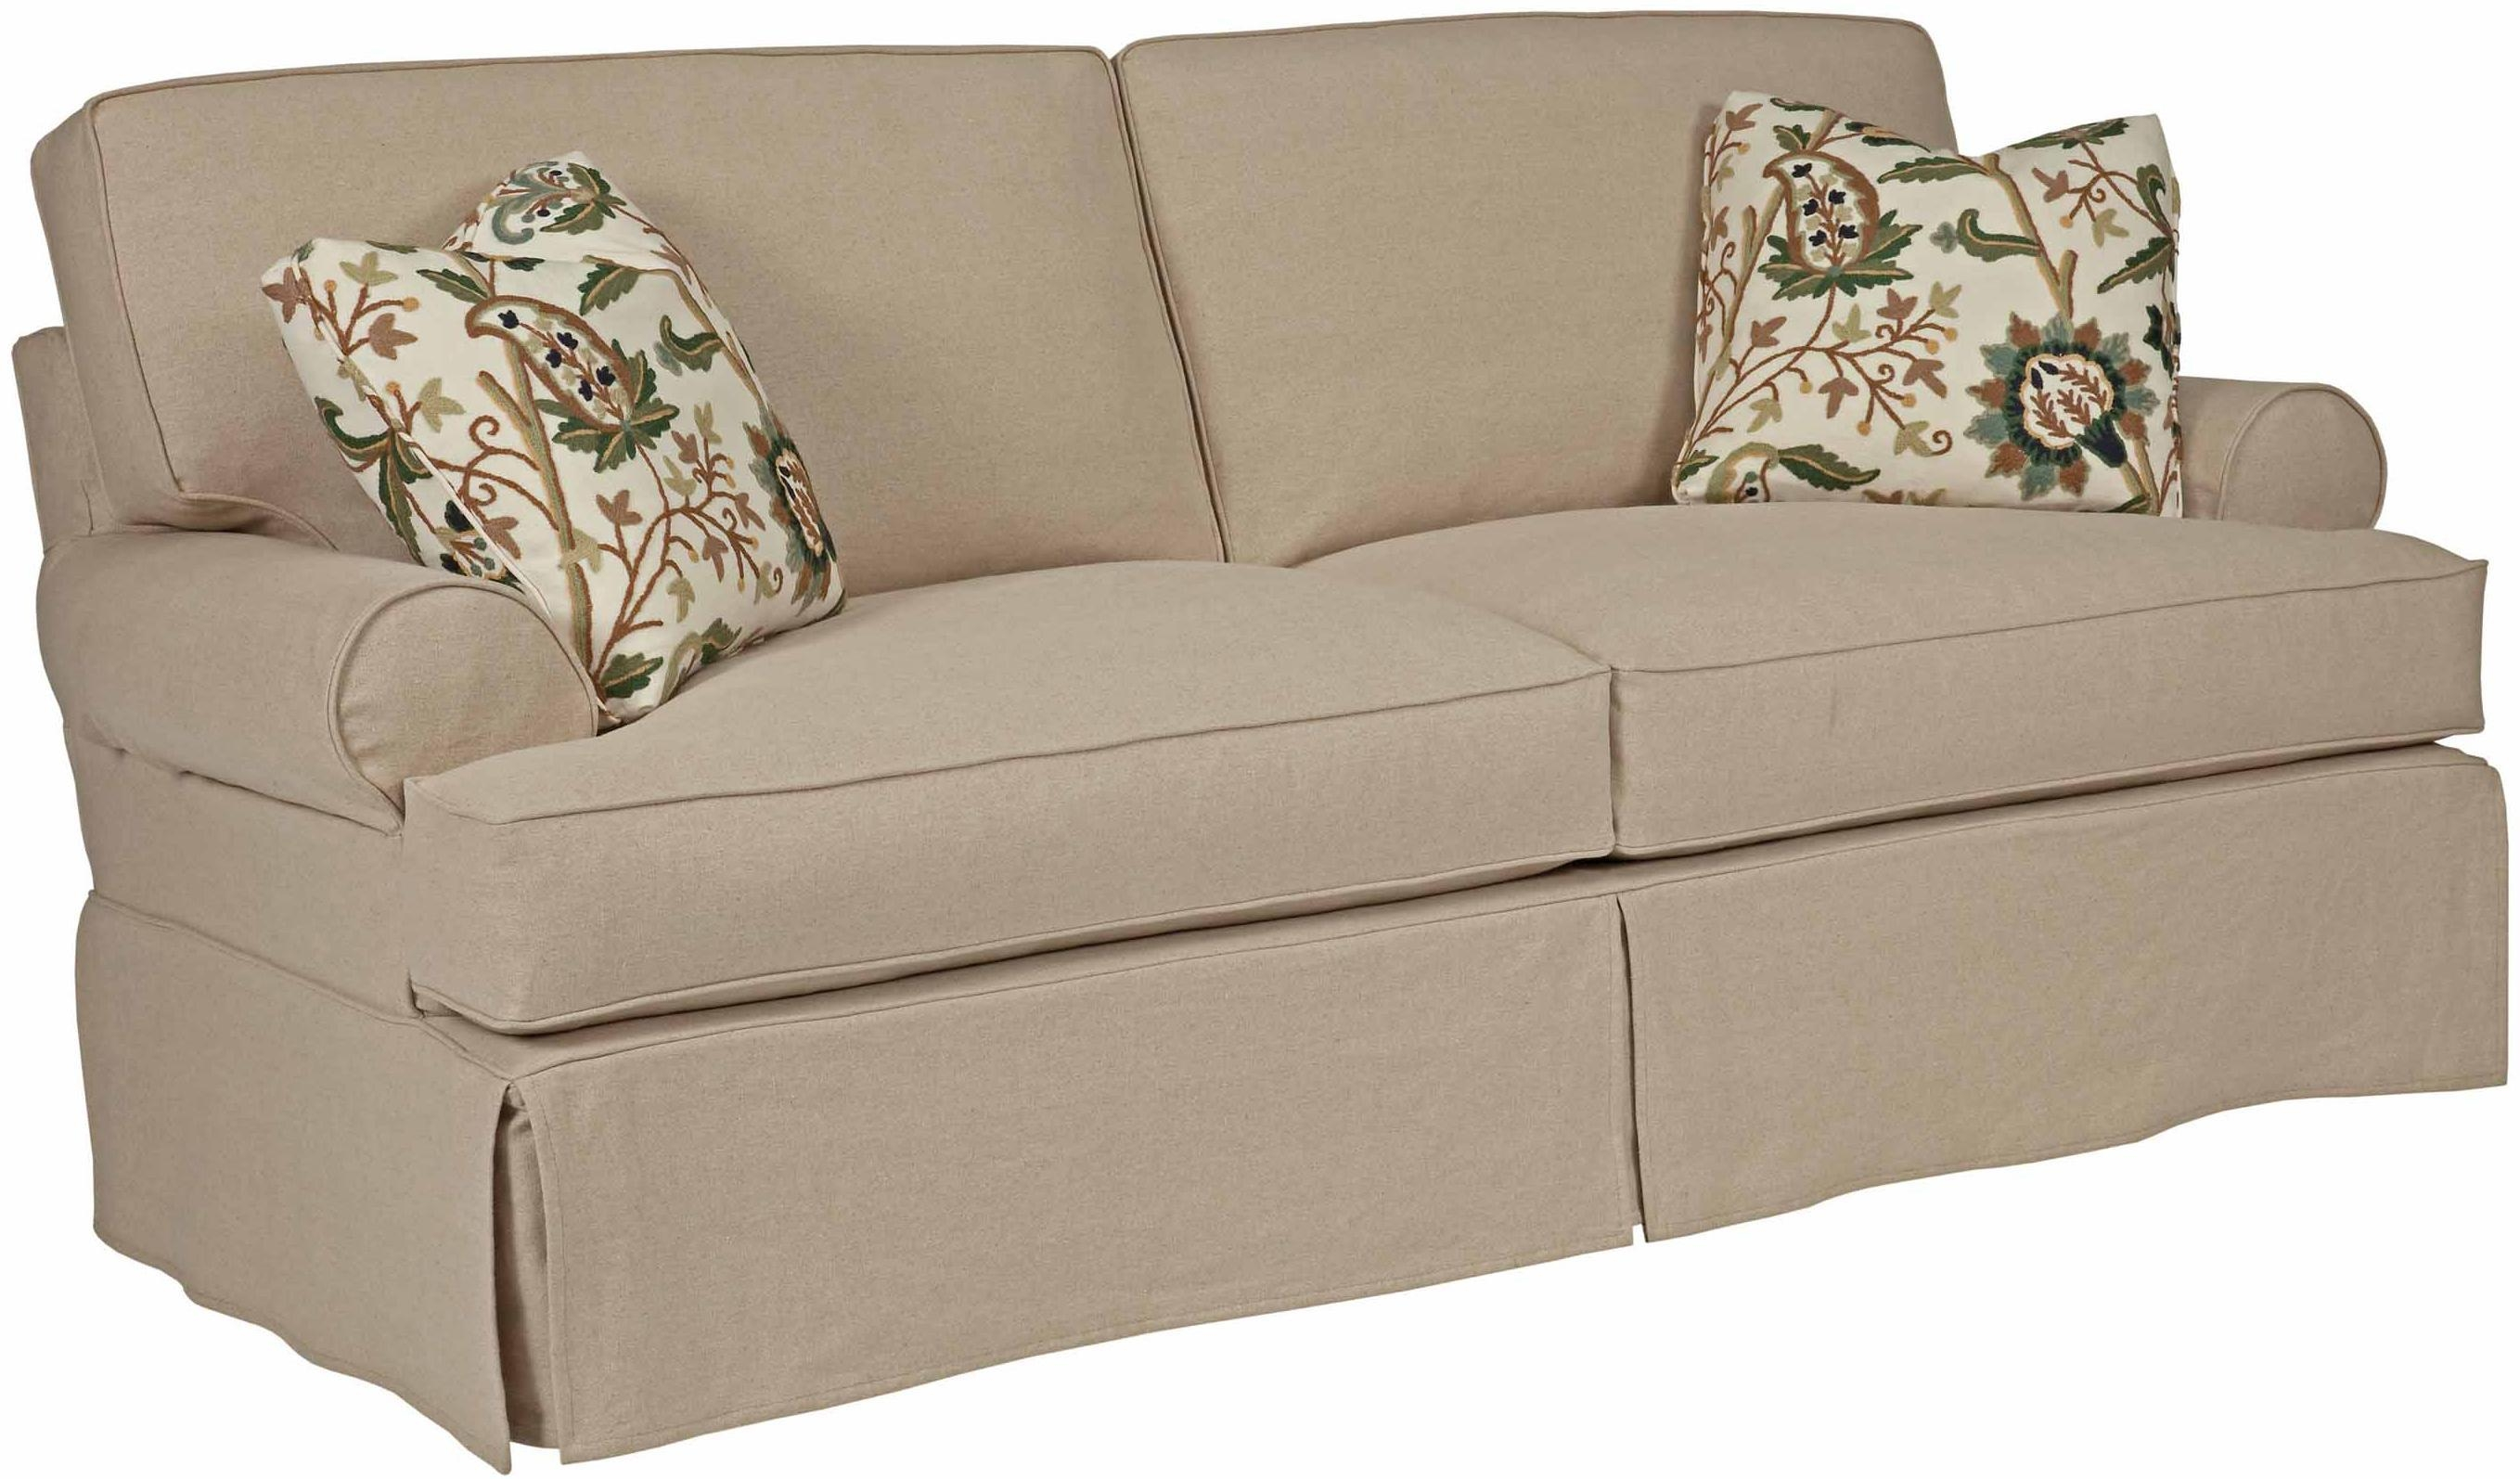 t sofa covers milano bed 9 25 photos loveseat slipcovers ideas